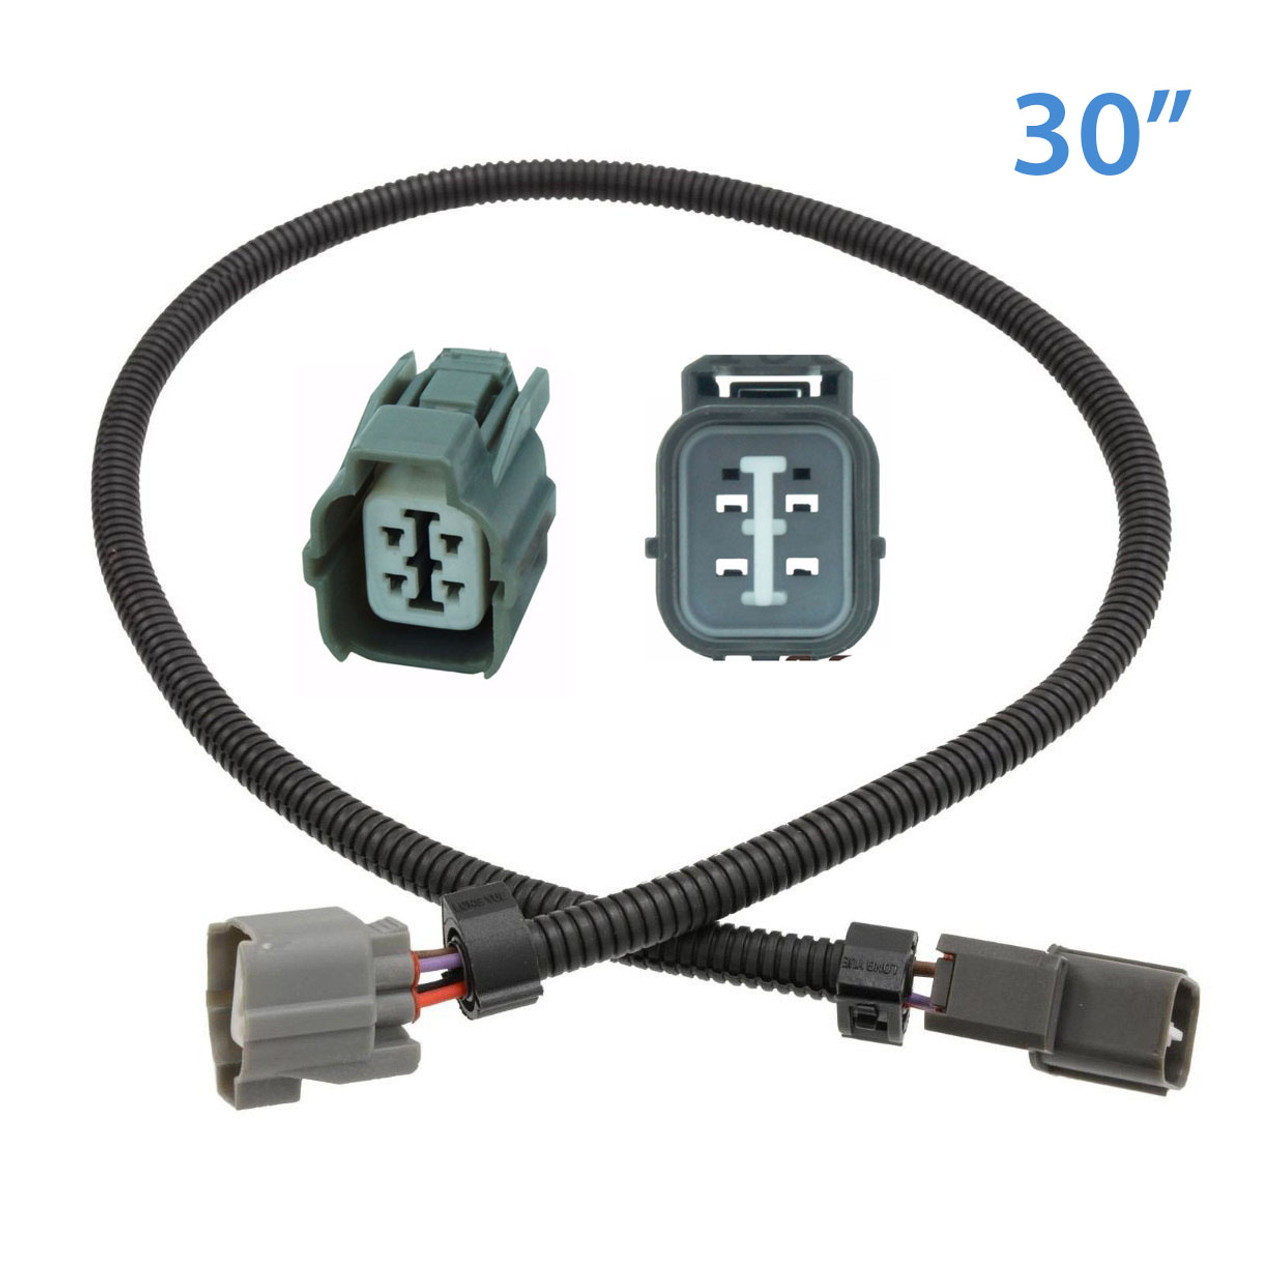 small resolution of 4 wire o2 sensor extension cable honda civic integra 30 obd gt wiring harness gt toyota tail light connector harness extension